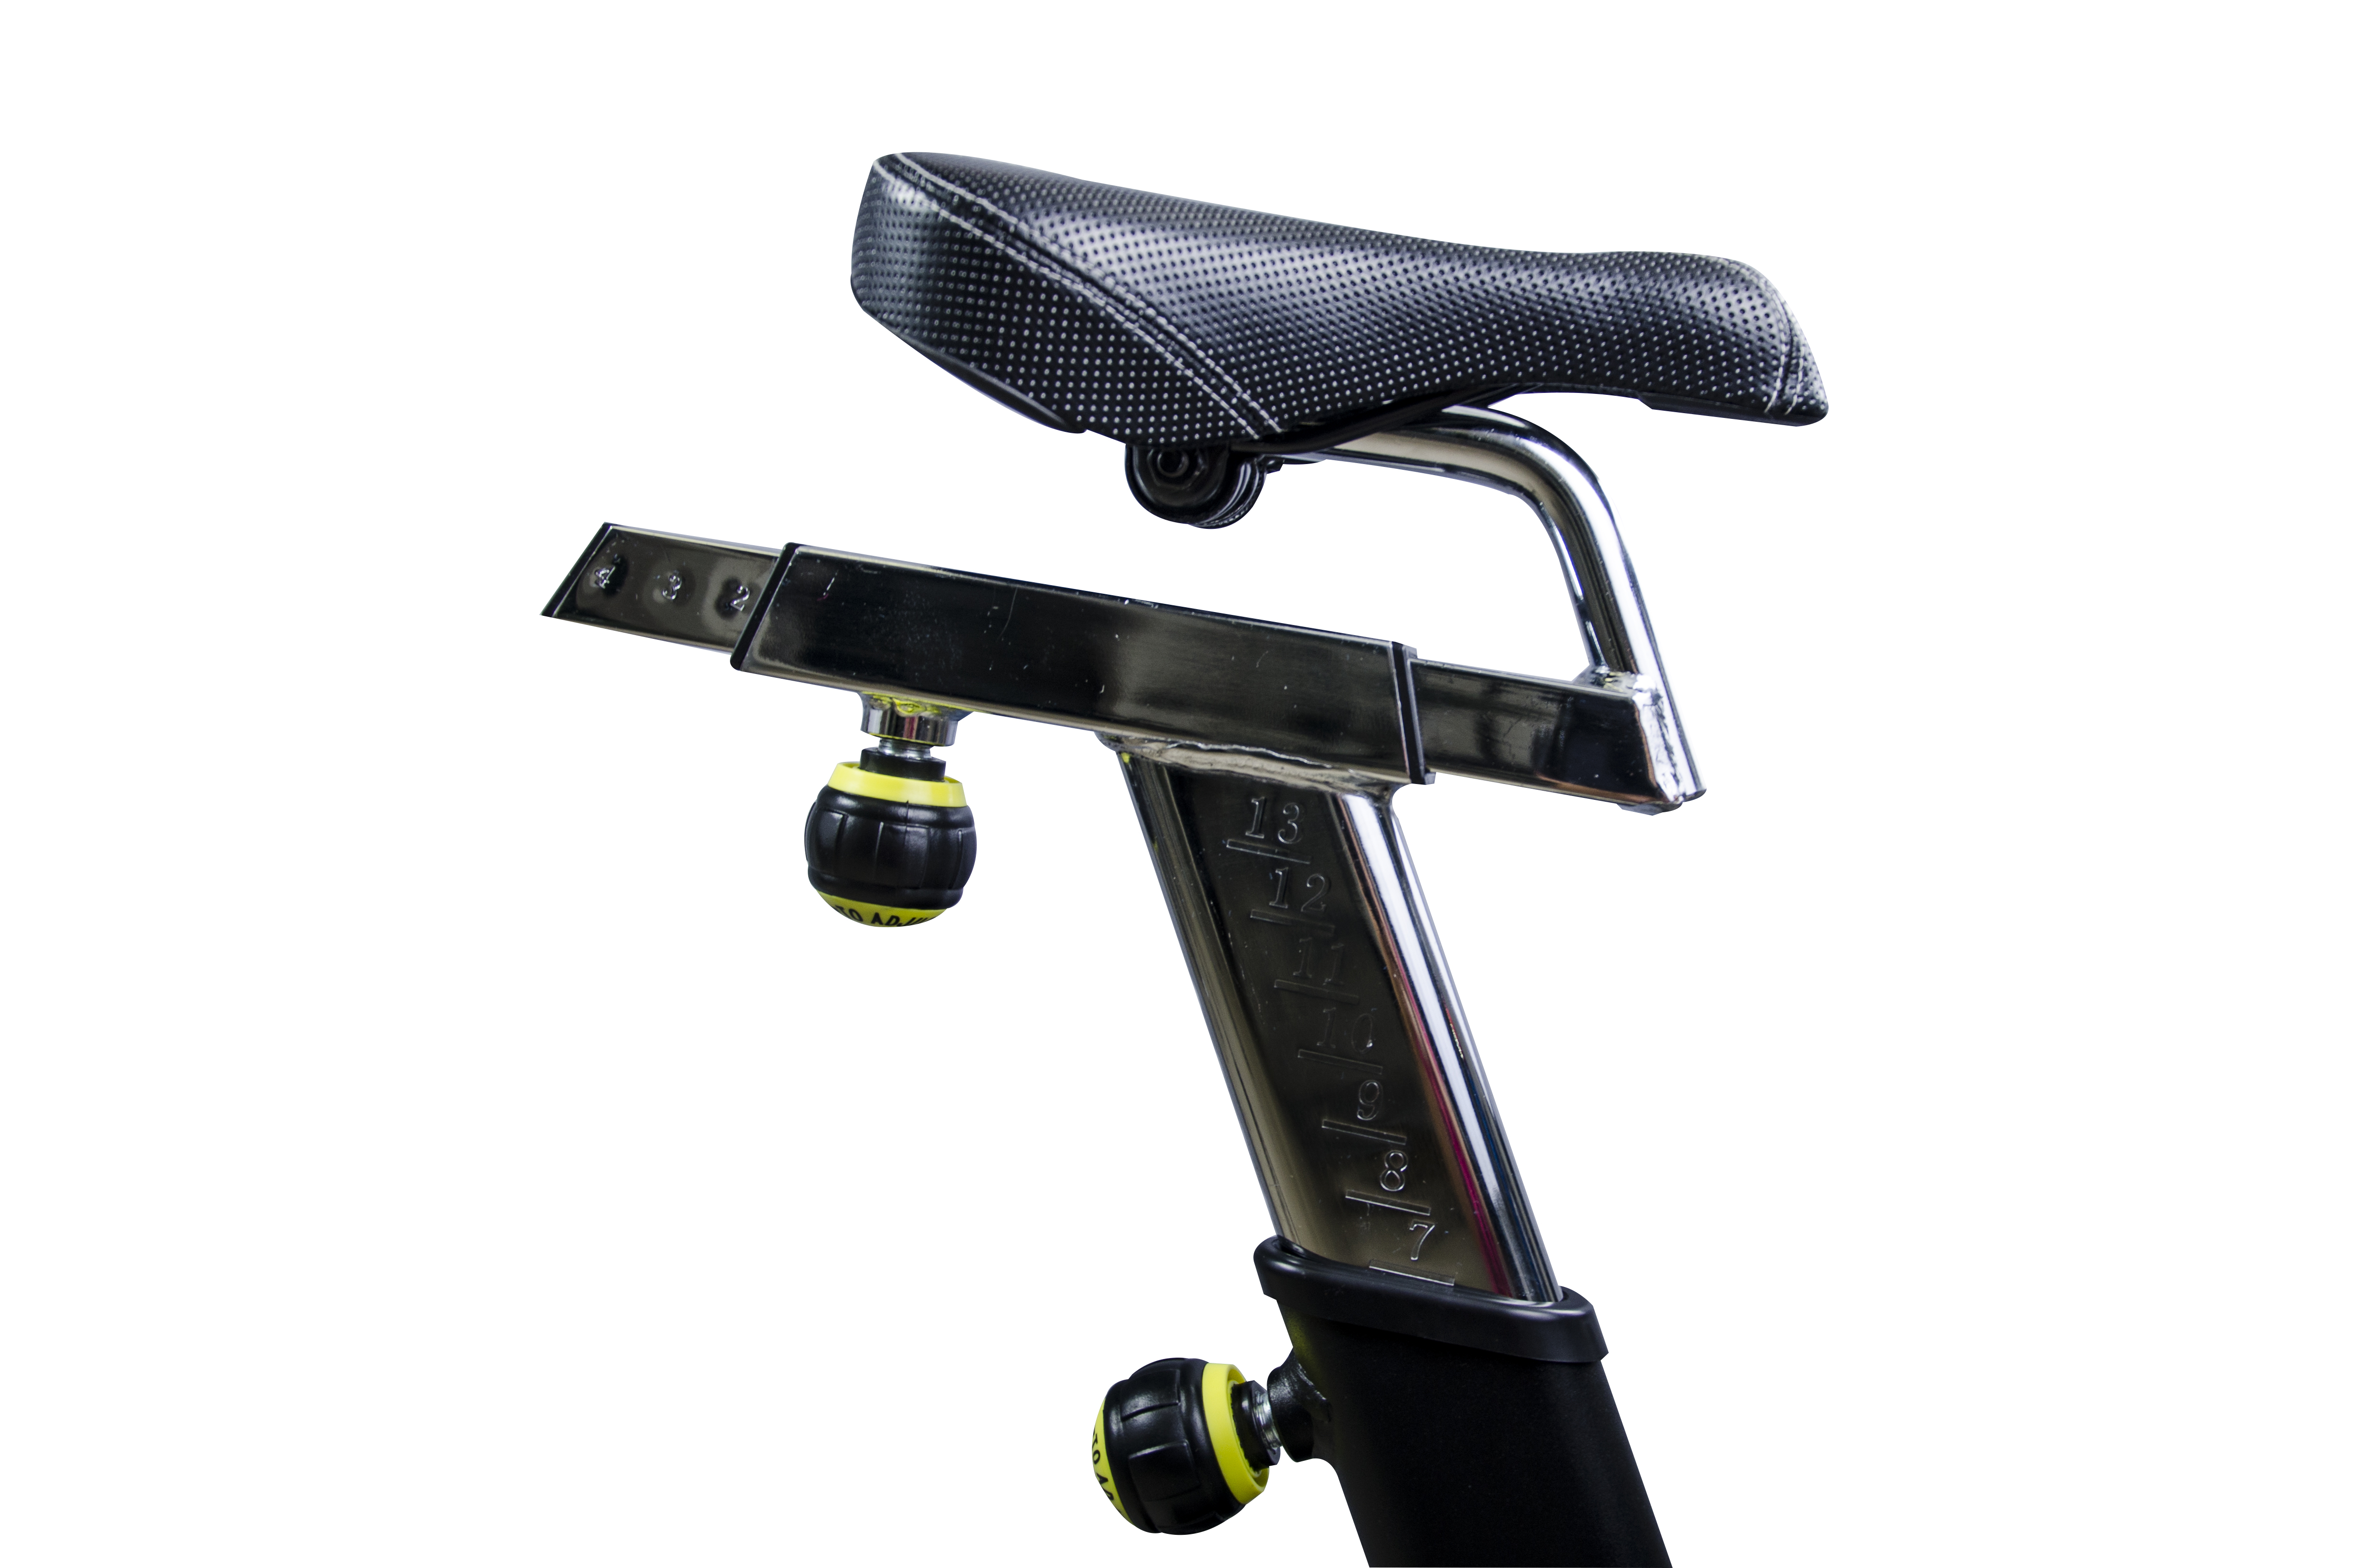 Bicicleta-spininng-swift-3